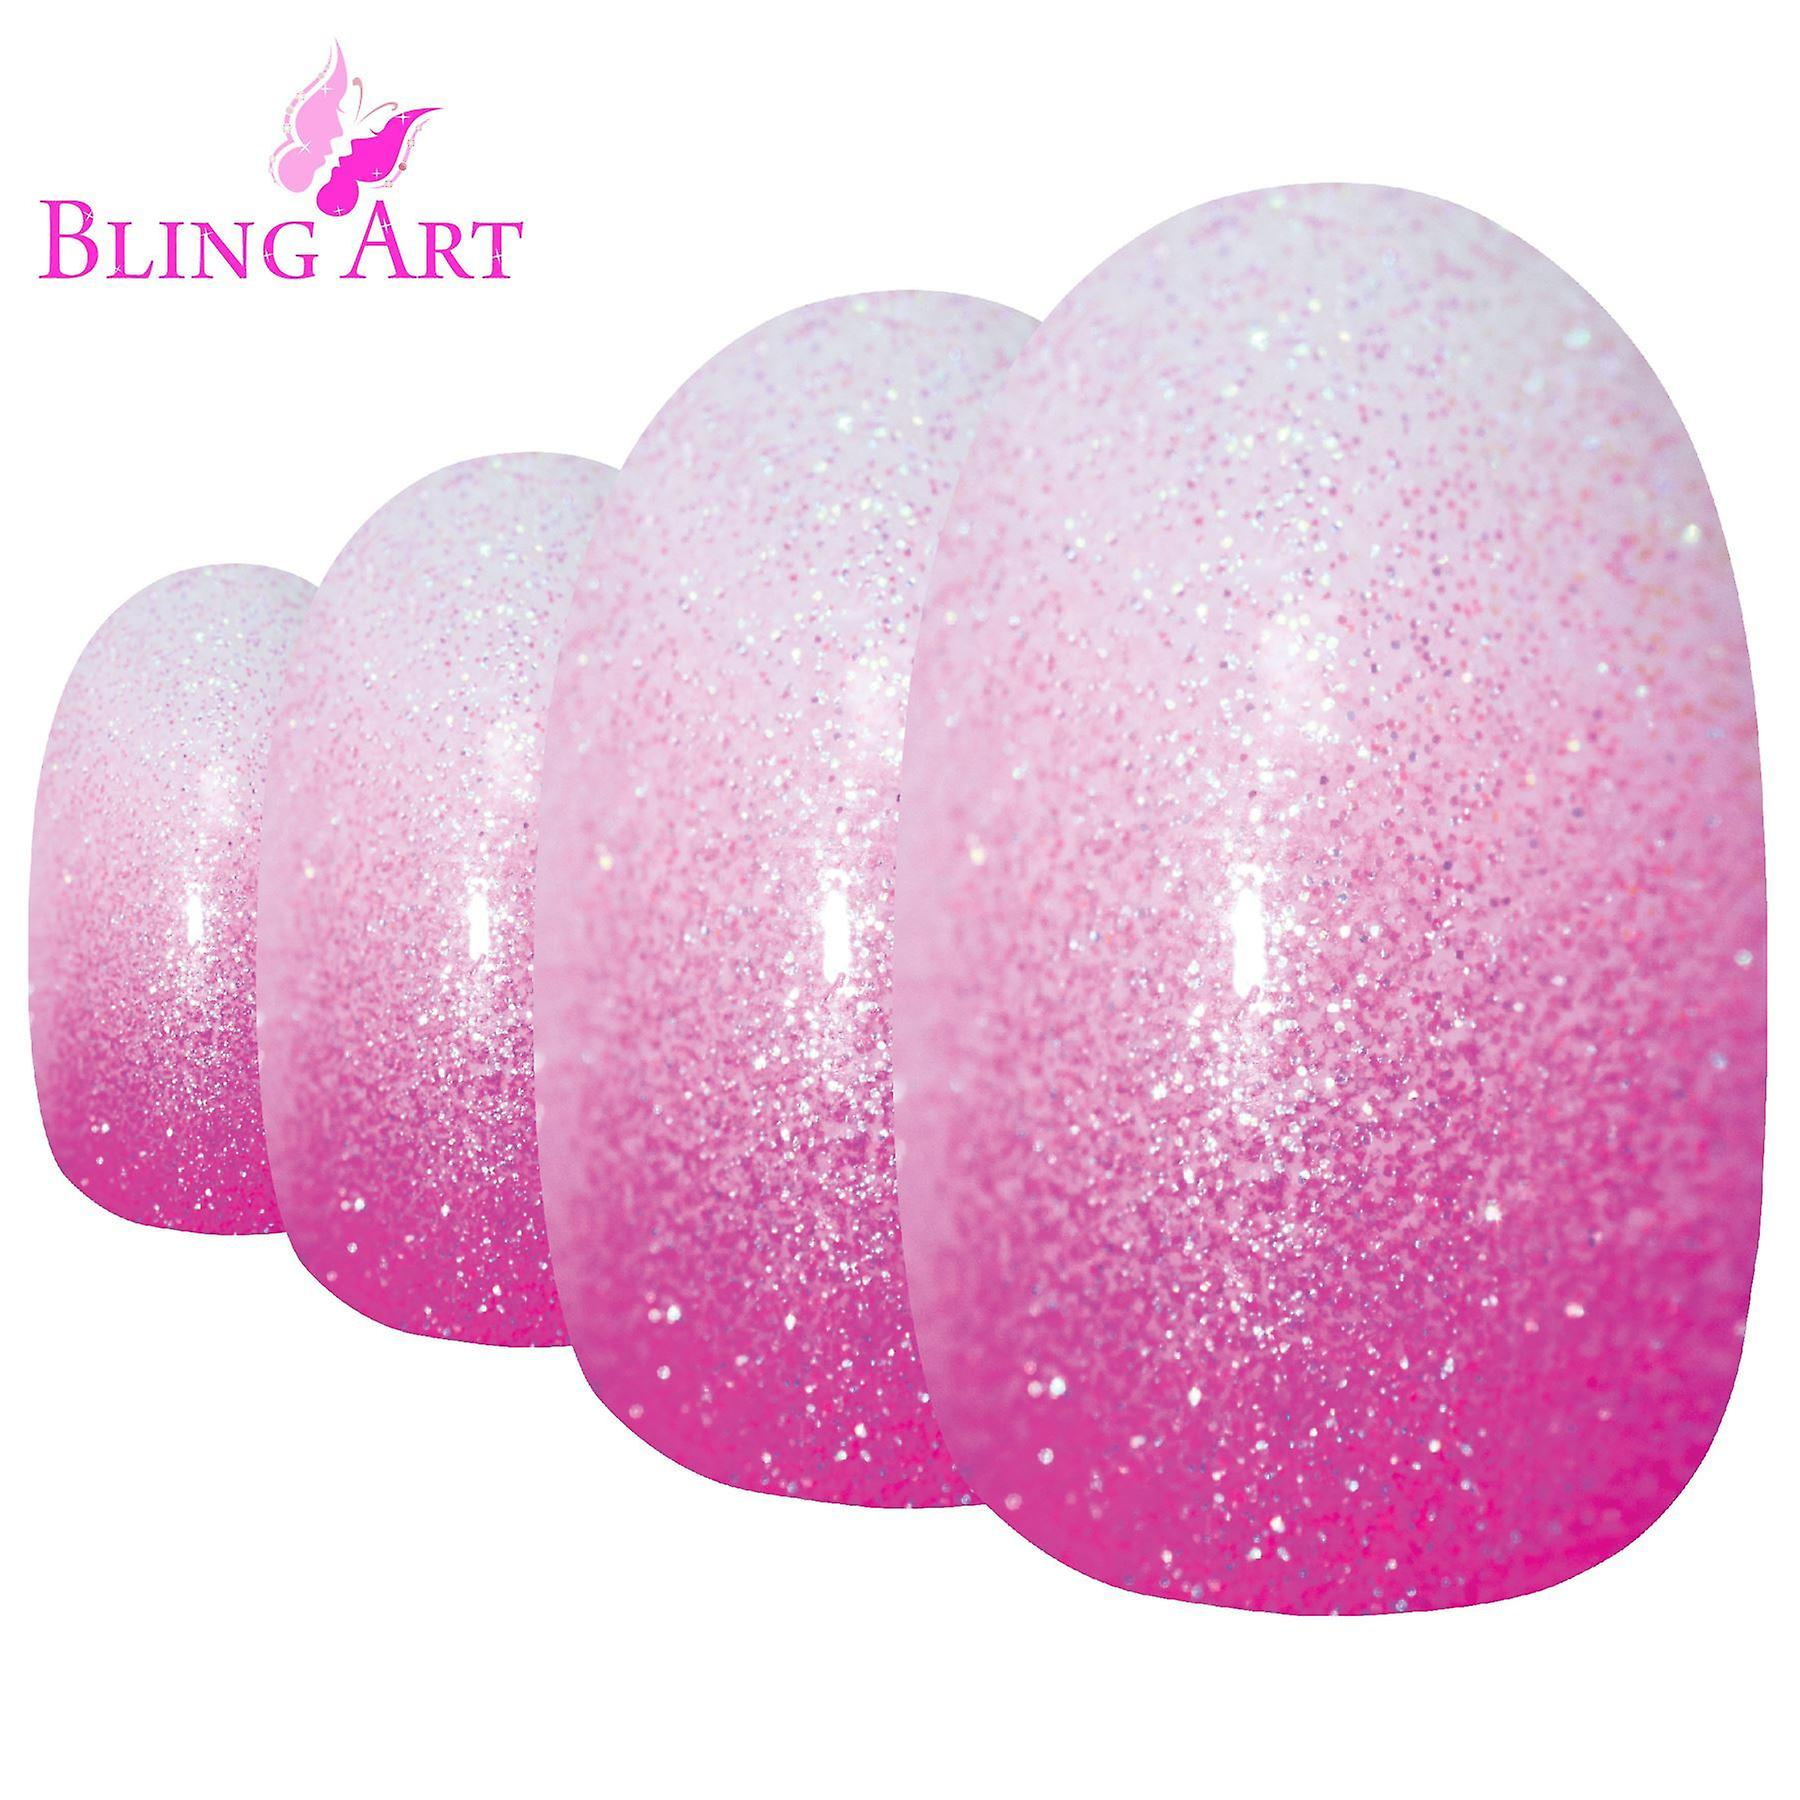 False nails by bling art pink gel ombre oval medium fake acrylic 24 tips glue - default title